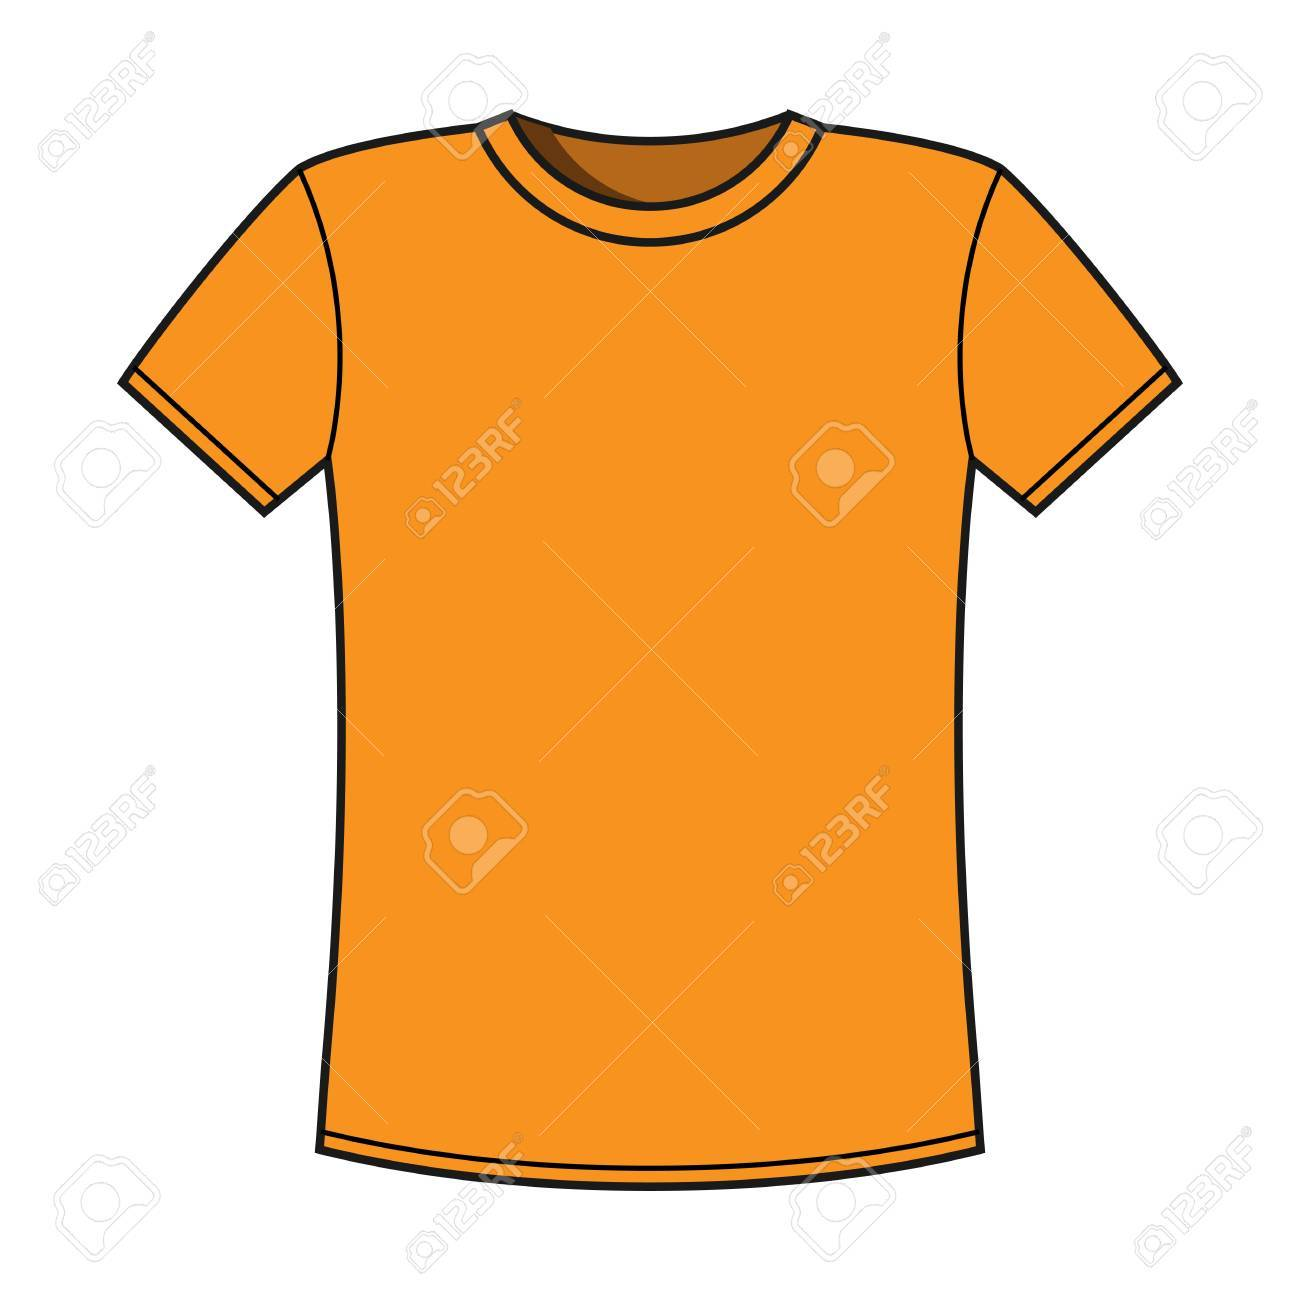 Blank Yellow T-shirt Template Royalty Free Cliparts, Vectors, And ...